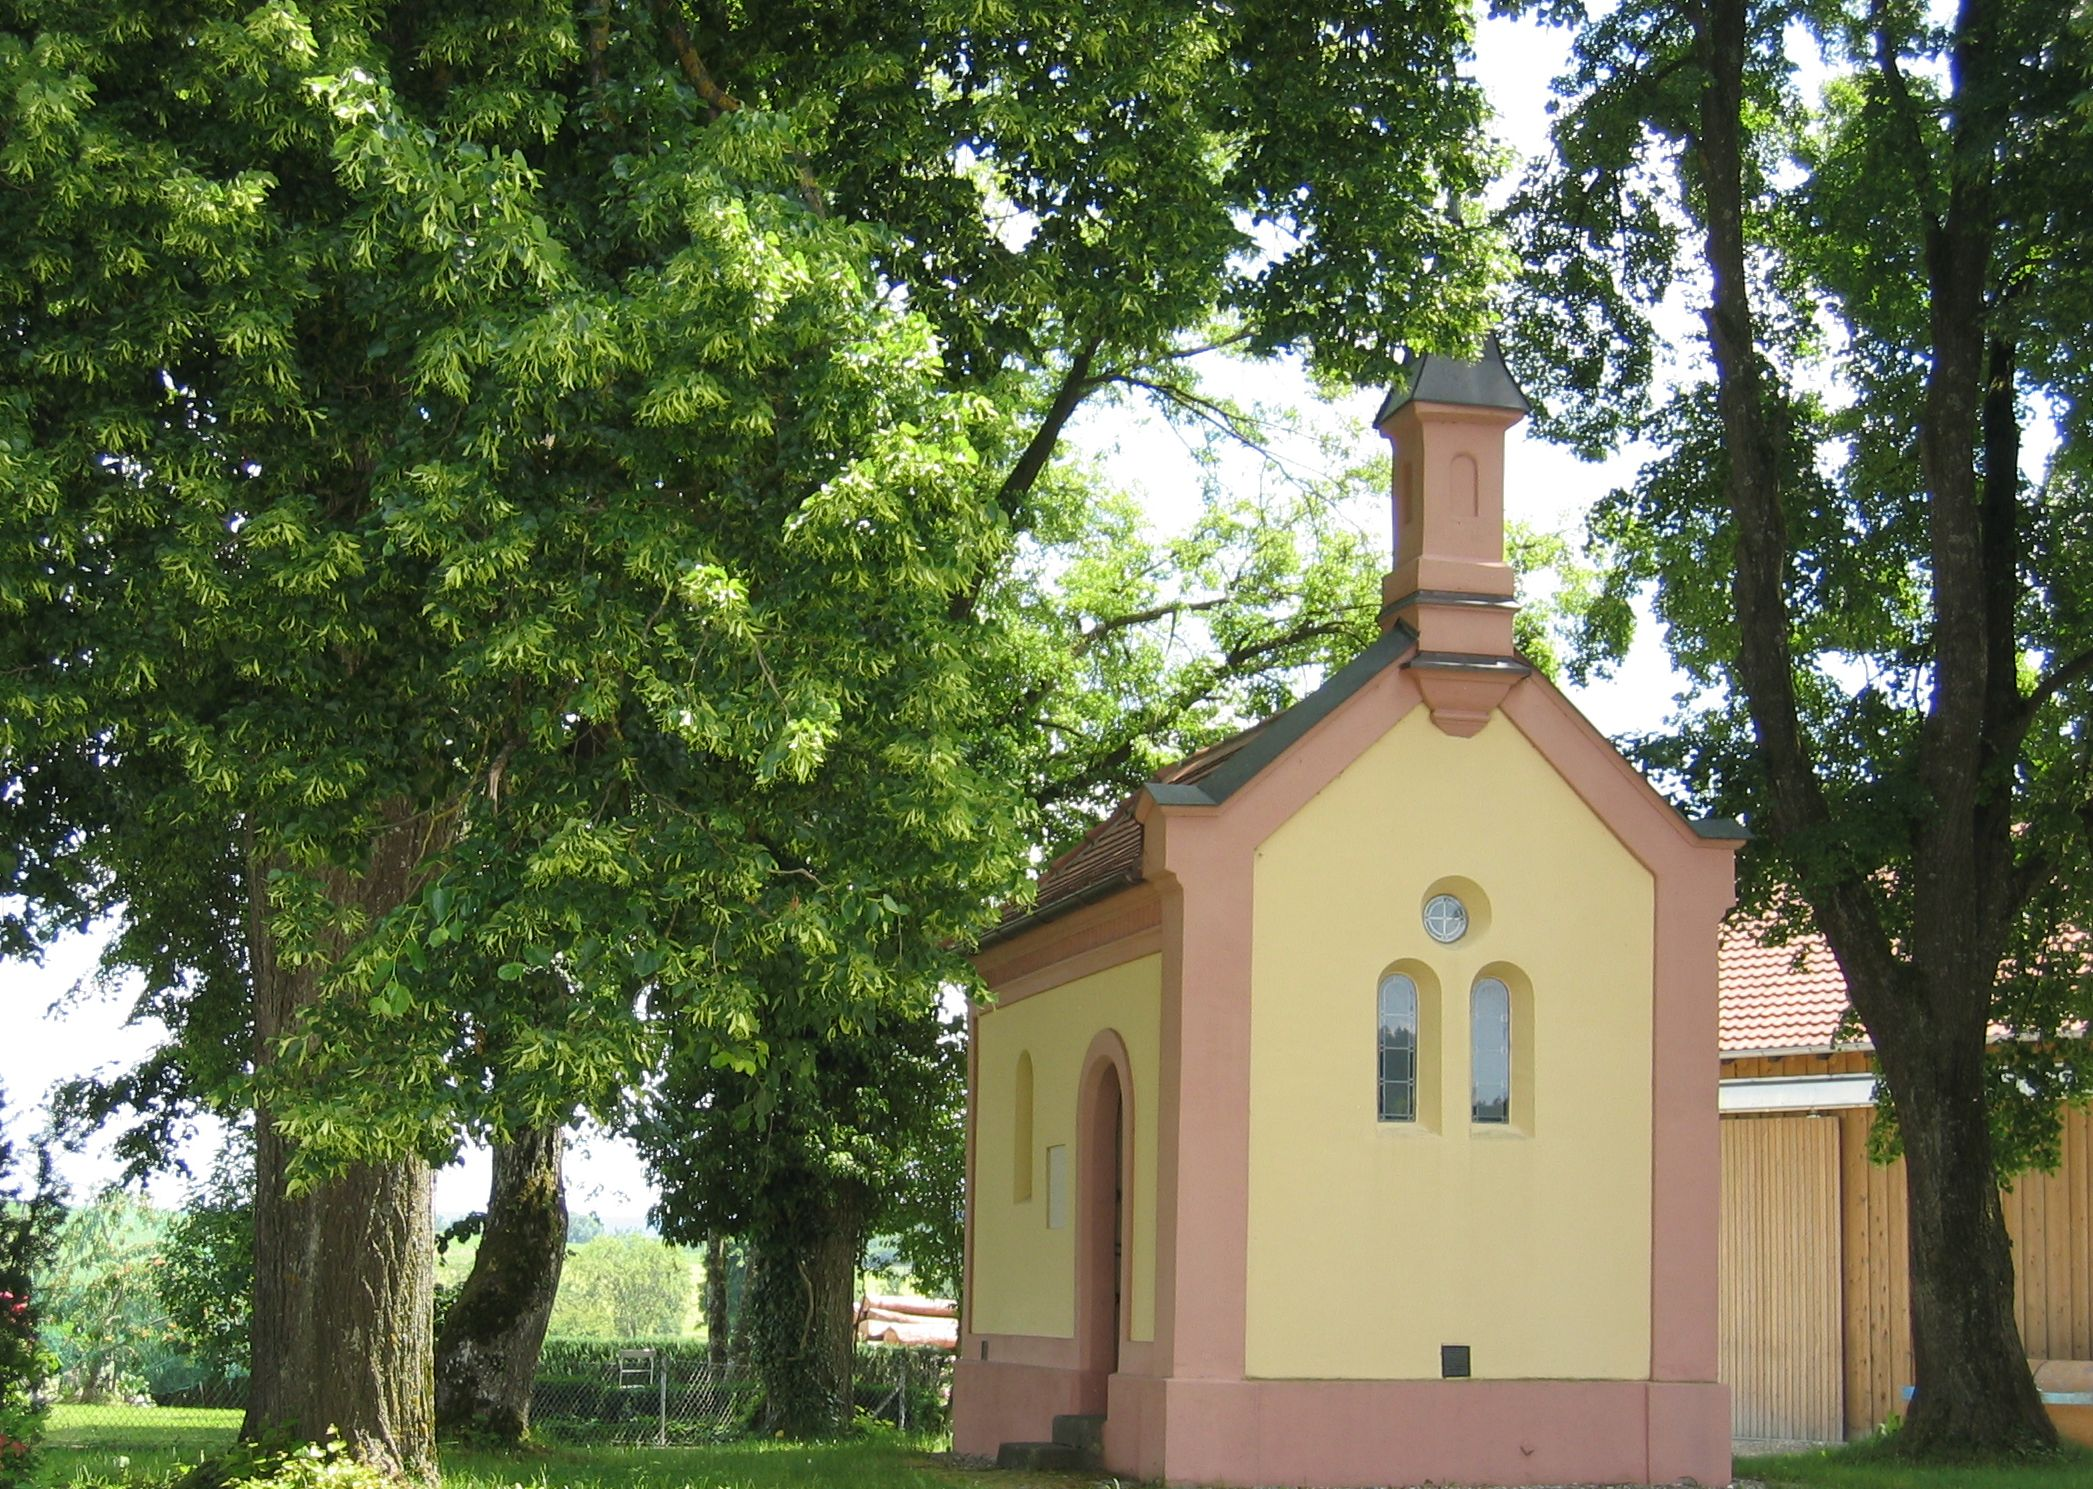 Kapelle Ettelried